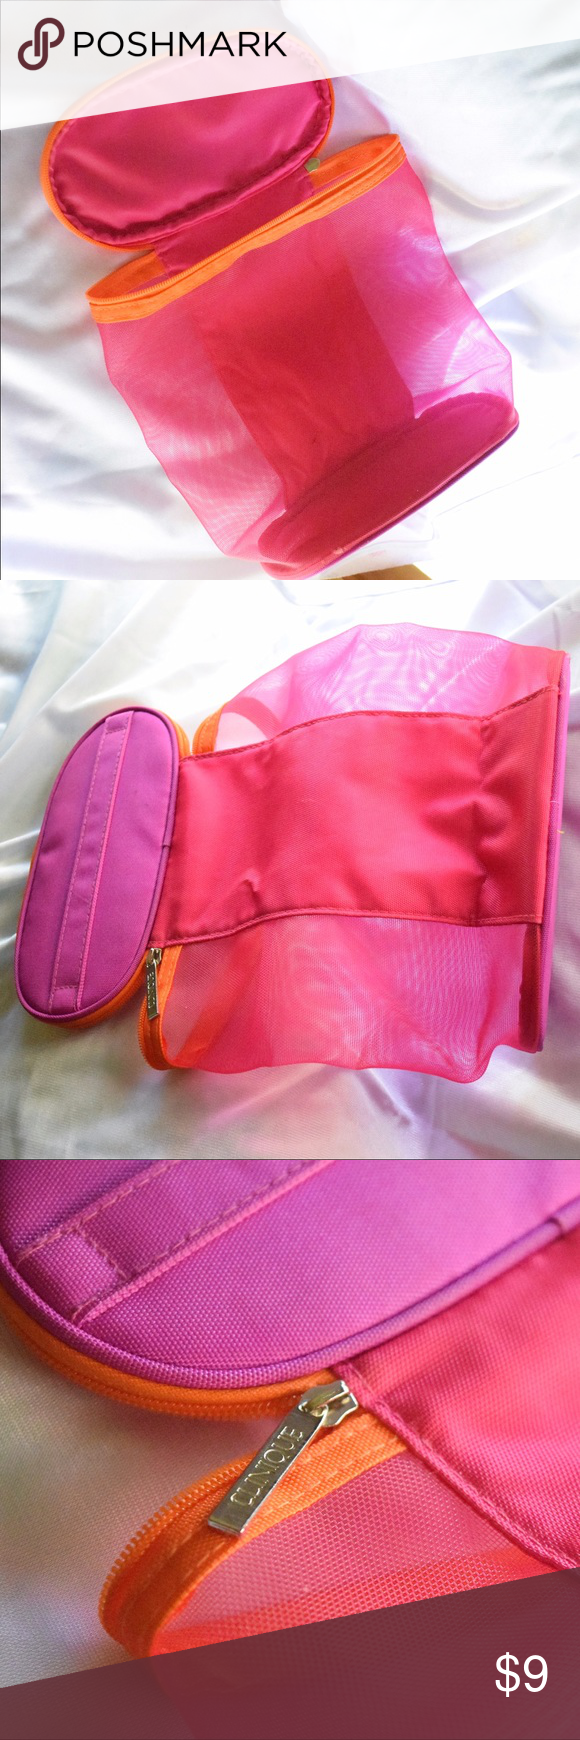 """Clinique Mesh Makeup Bag Dimensions are approx. 8.5"""" across and 8"""" in height 💗 Condition: like new!! 💗 Make me an offer! everything must go! 💗 Bundle and save!! 💗 Comment with questions :) Clinique Bags Cosmetic Bags & Cases"""